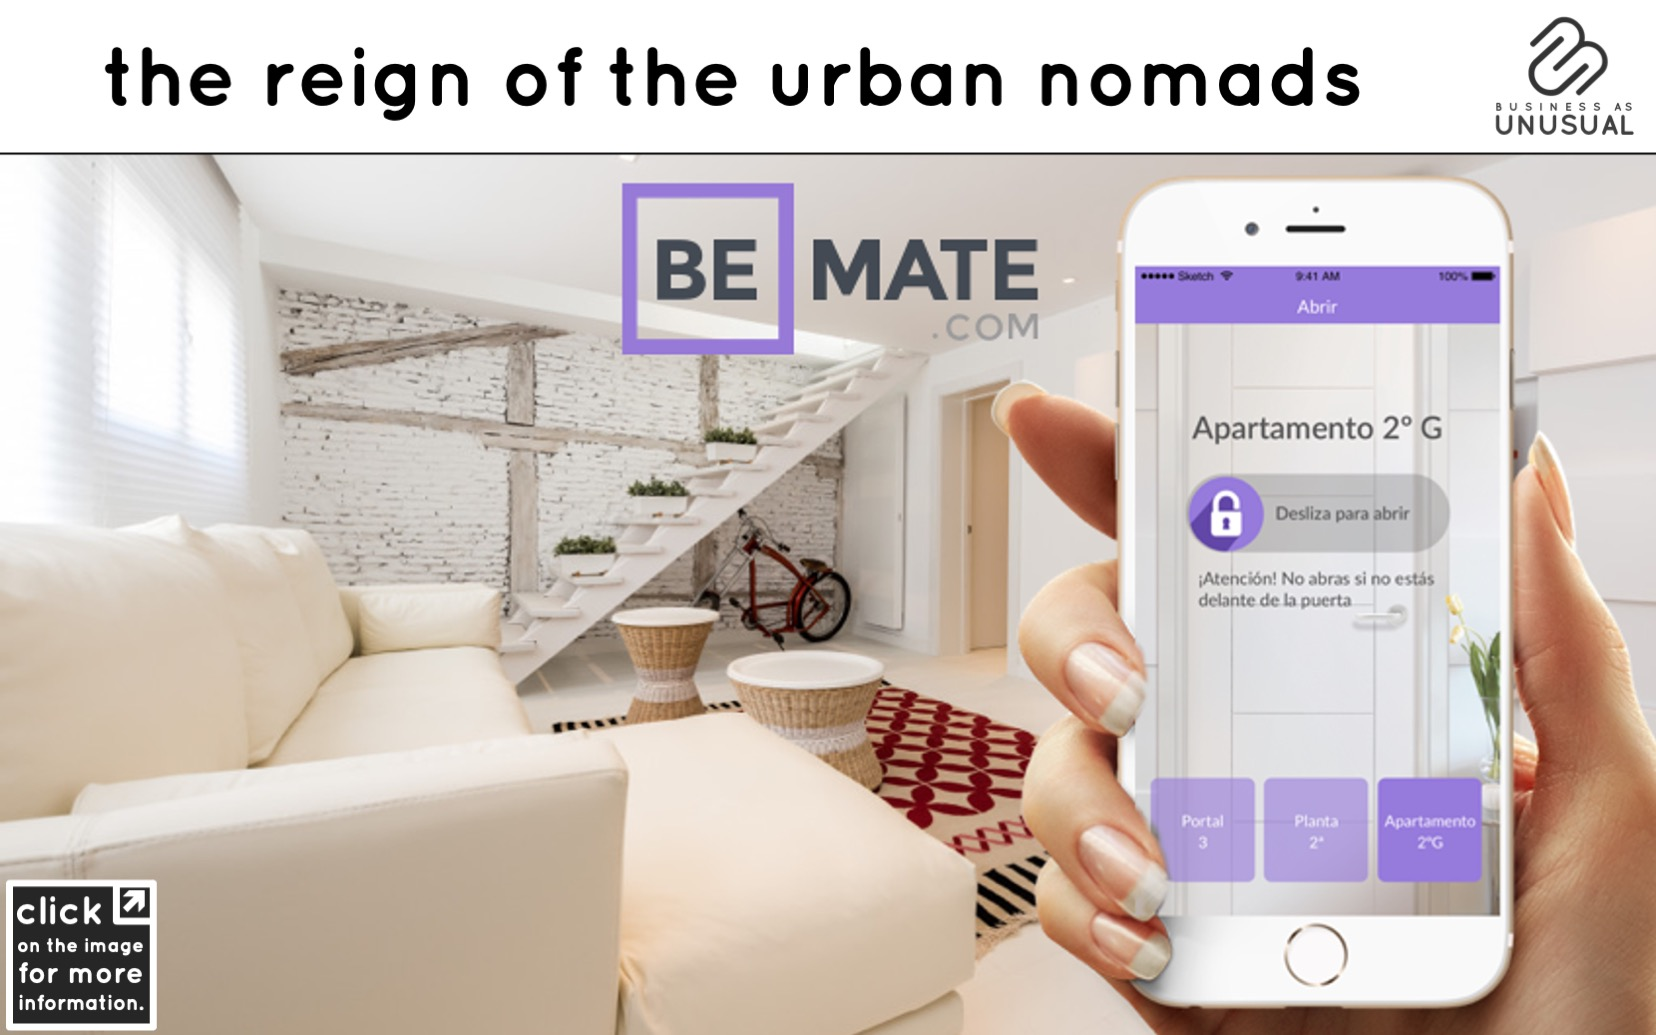 The Reign of the Urban Nomads - Bemate